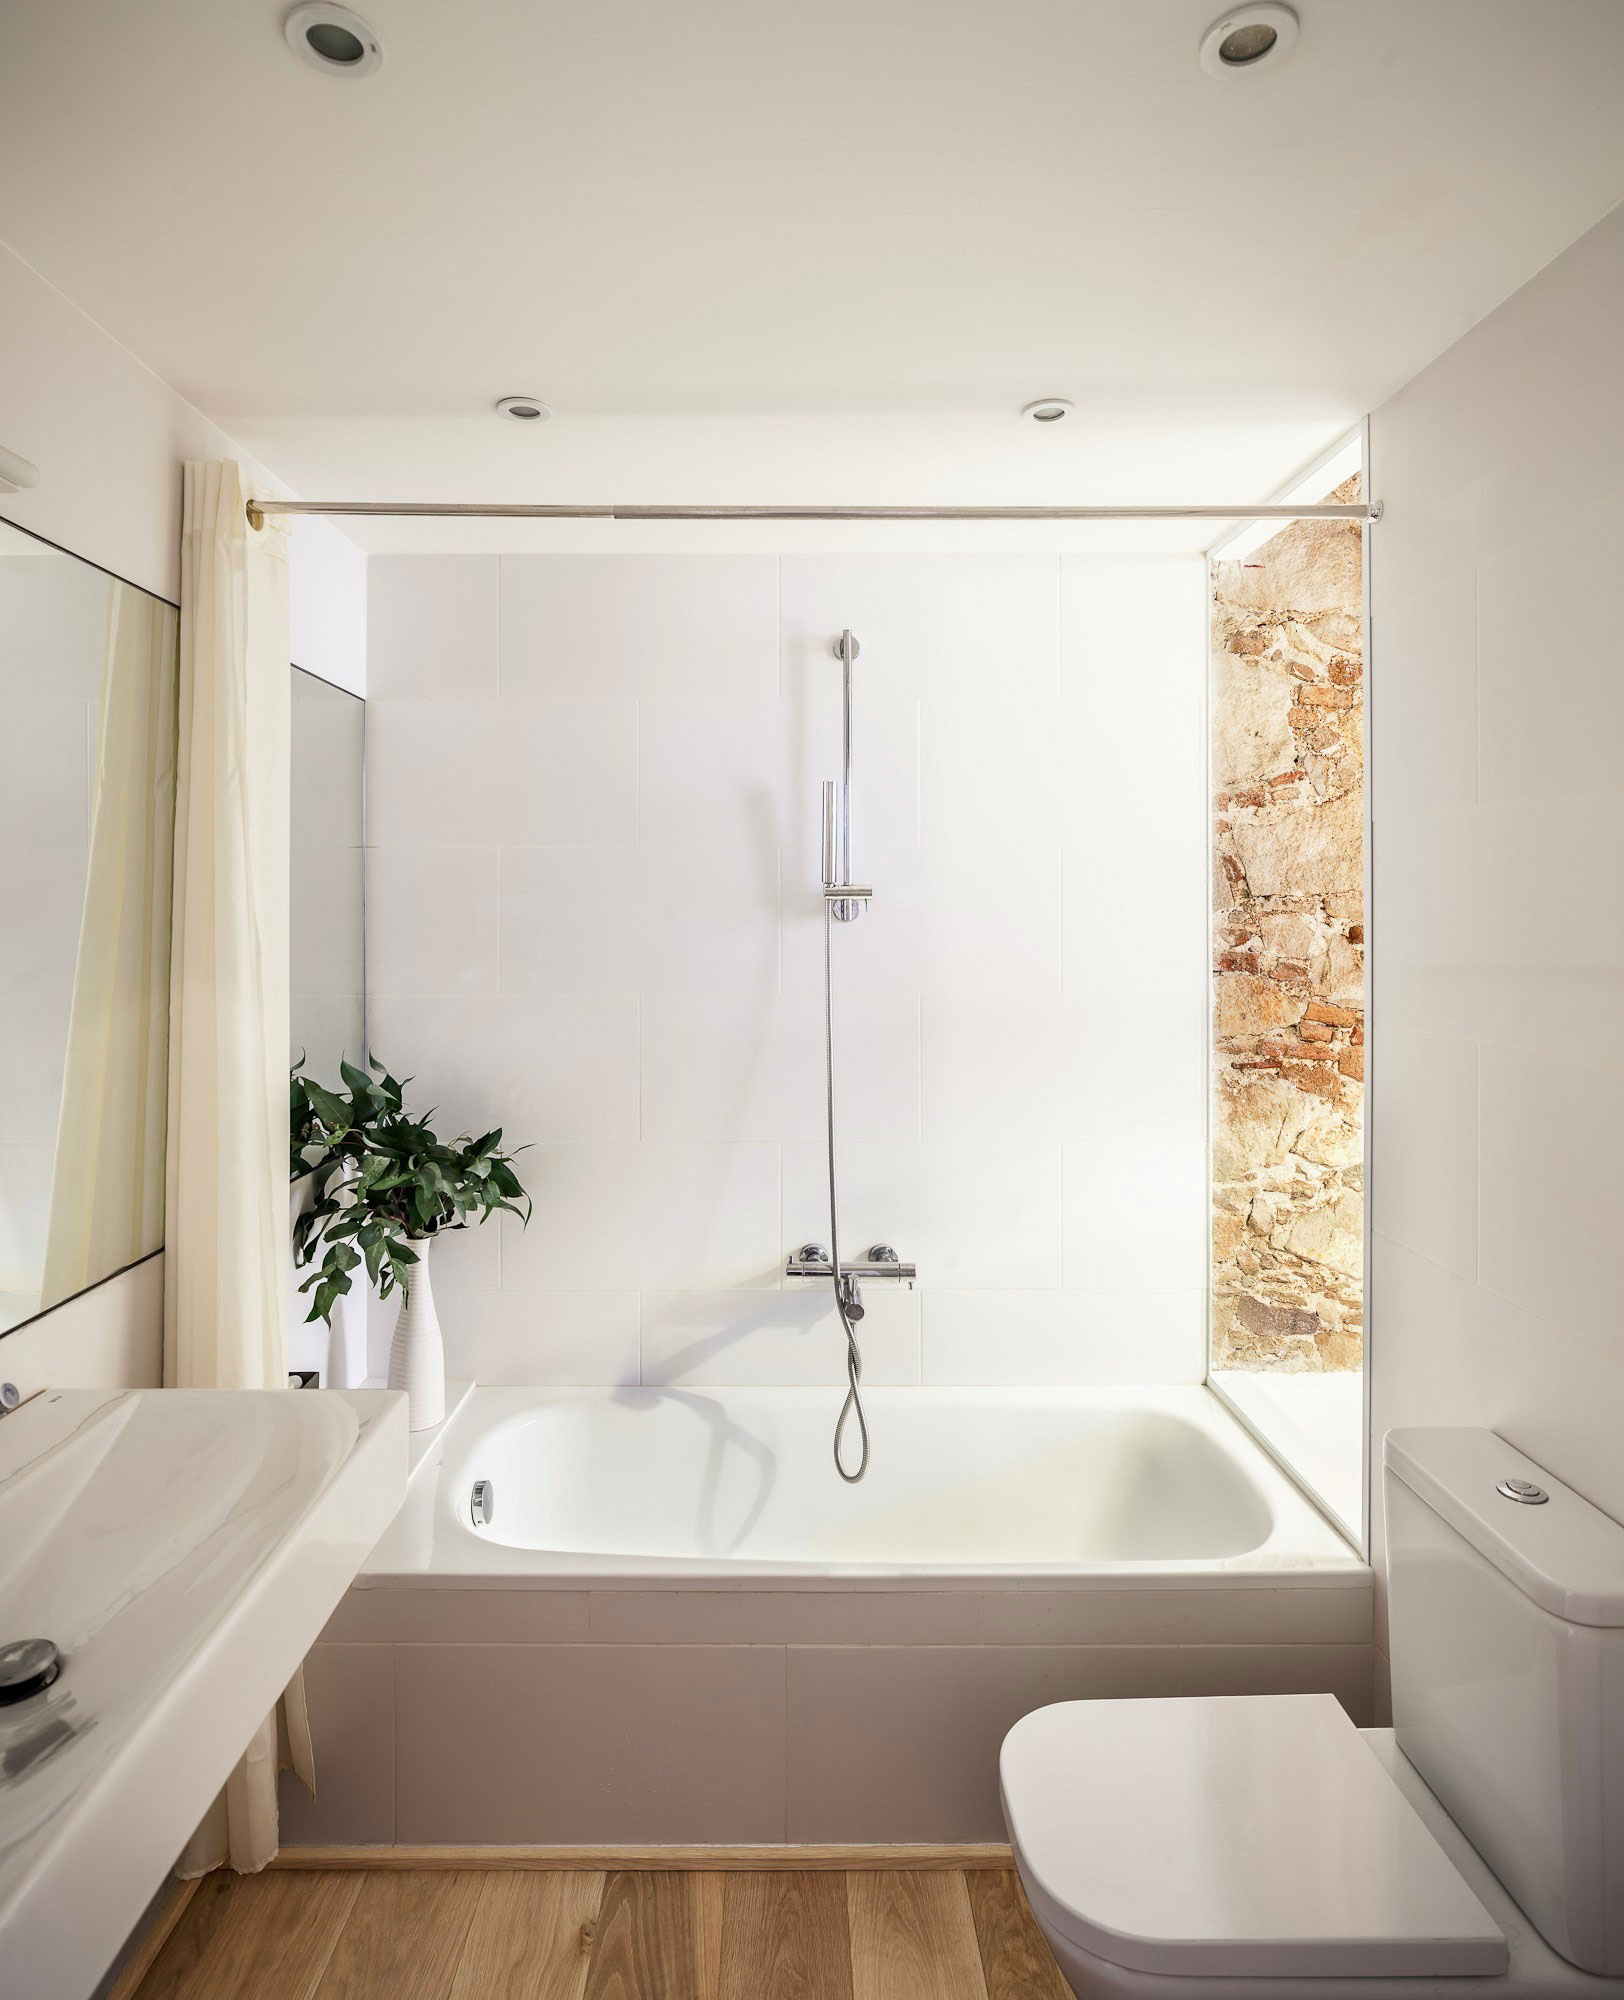 Renovation Apartment In Les Corts Bathroom